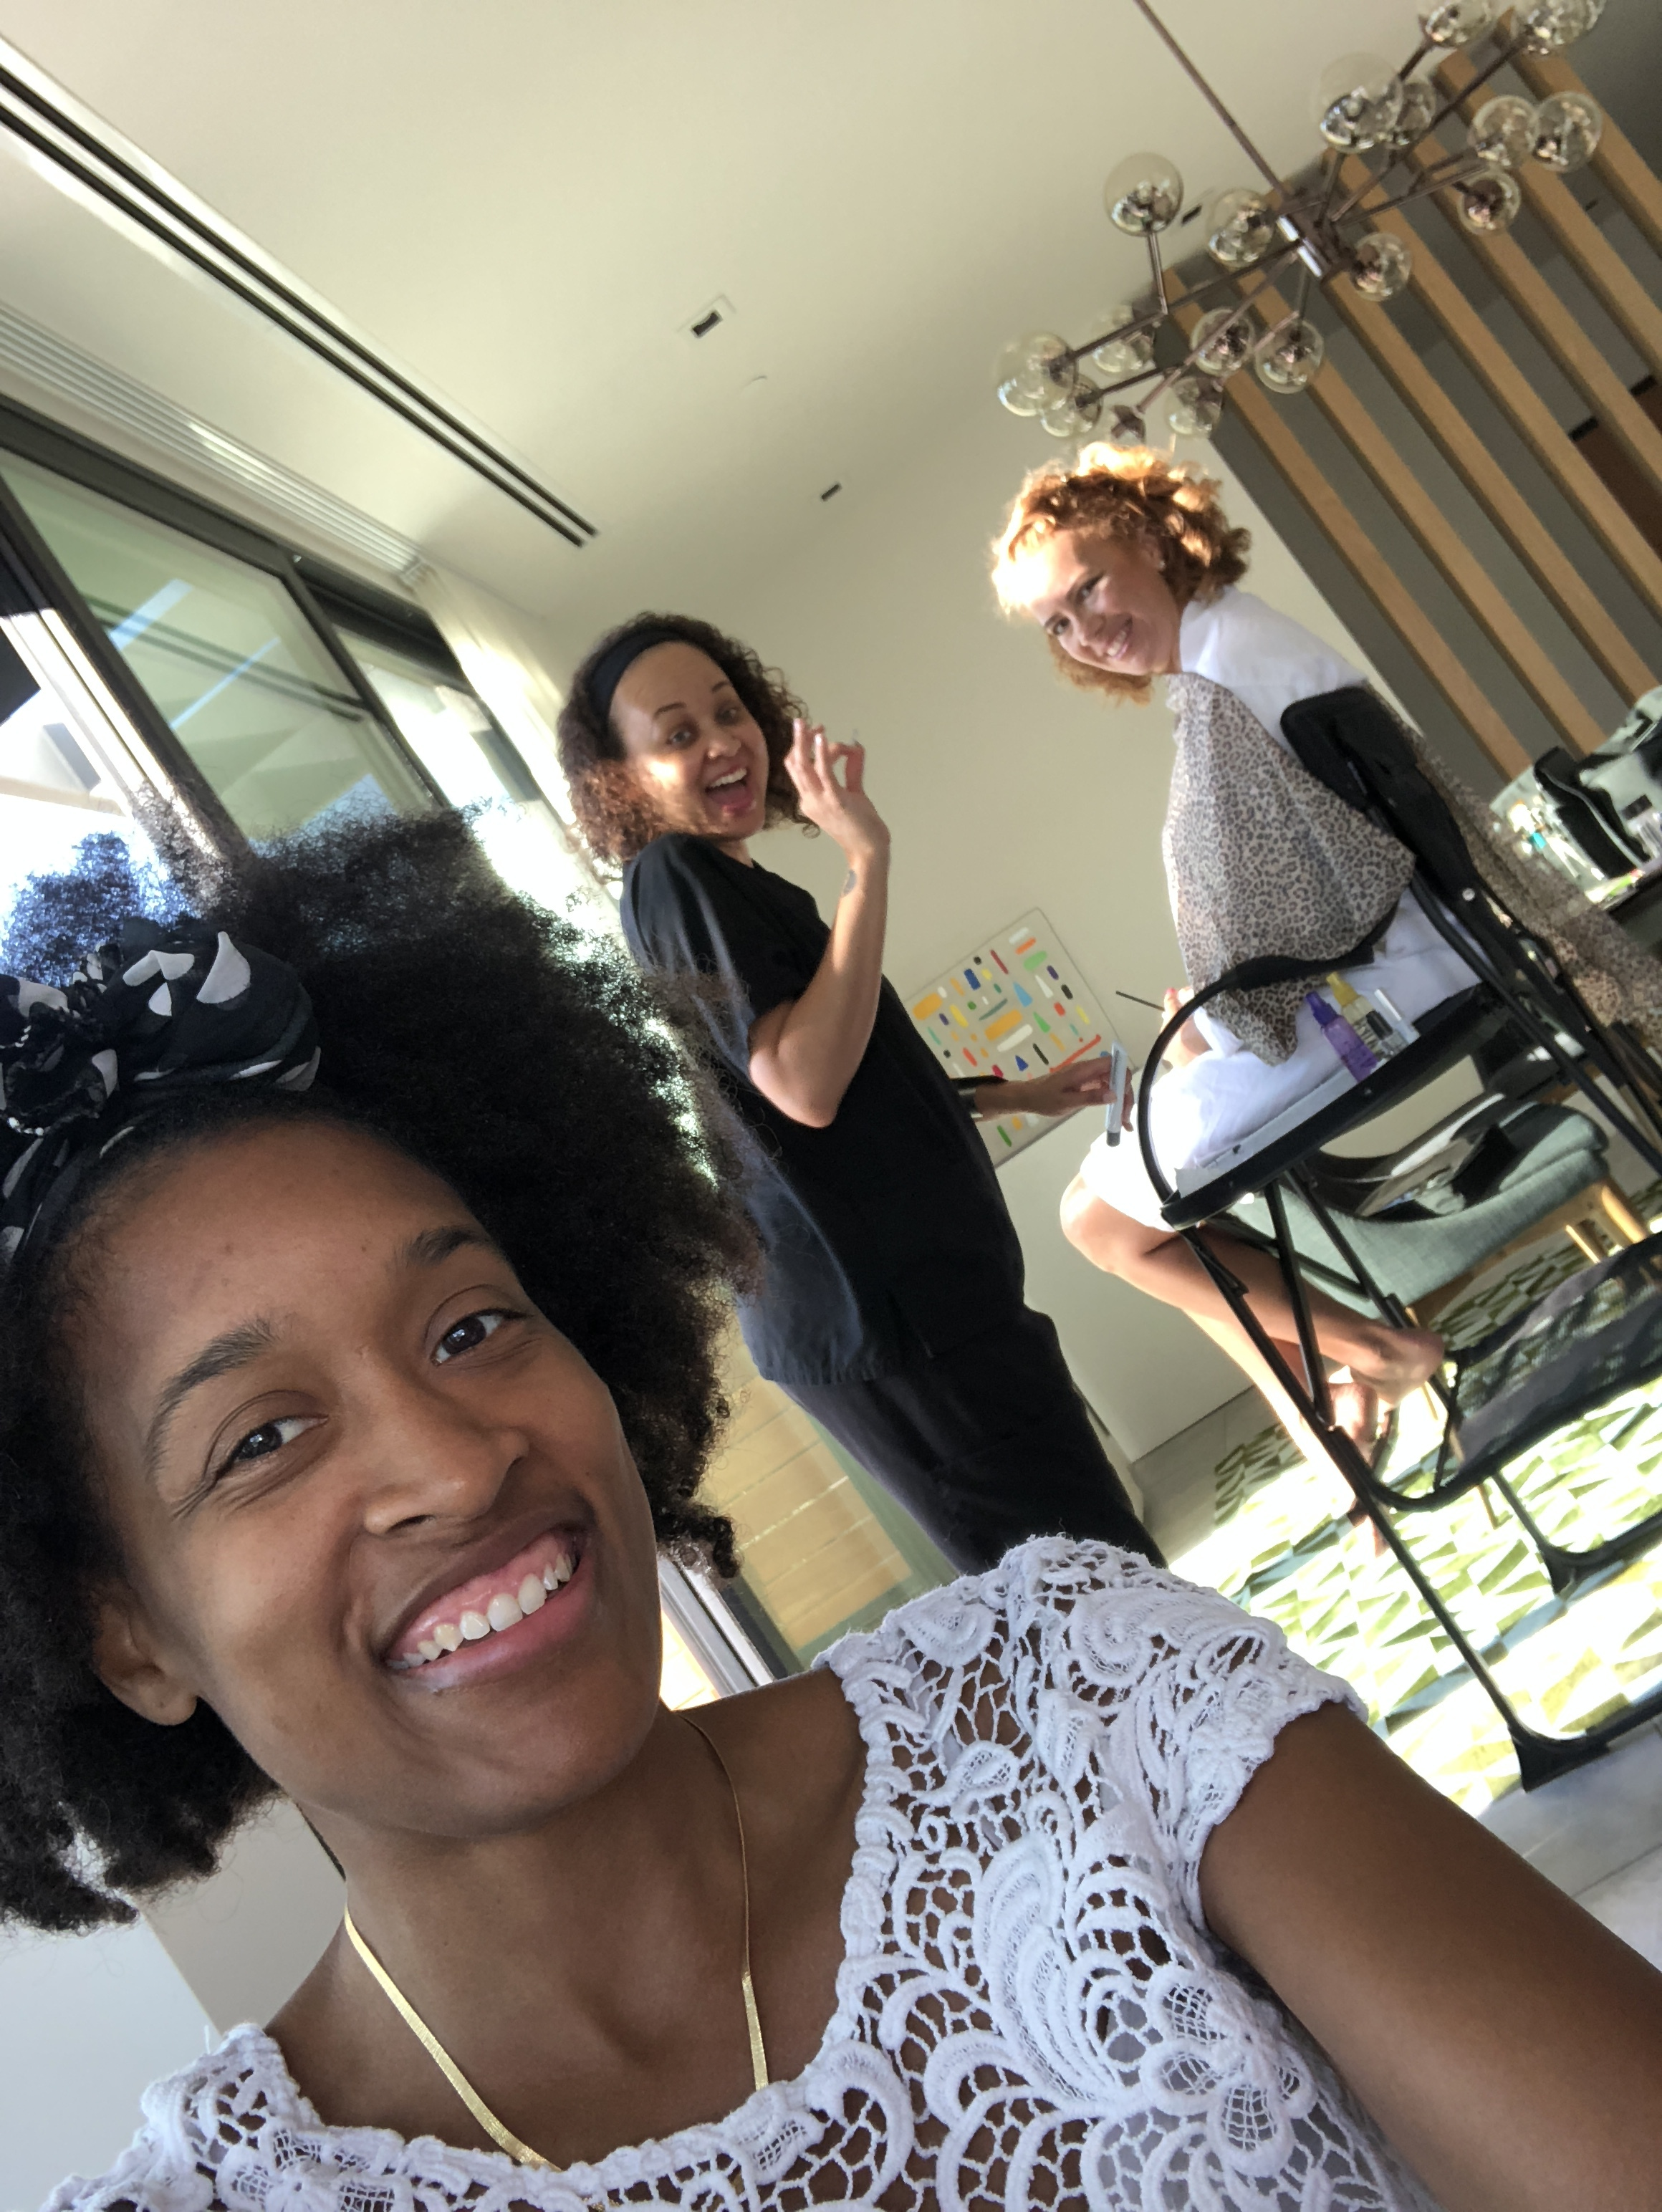 The Social Photog behind the scenes with Celia Schauble and makeup artist Jalia Pettis